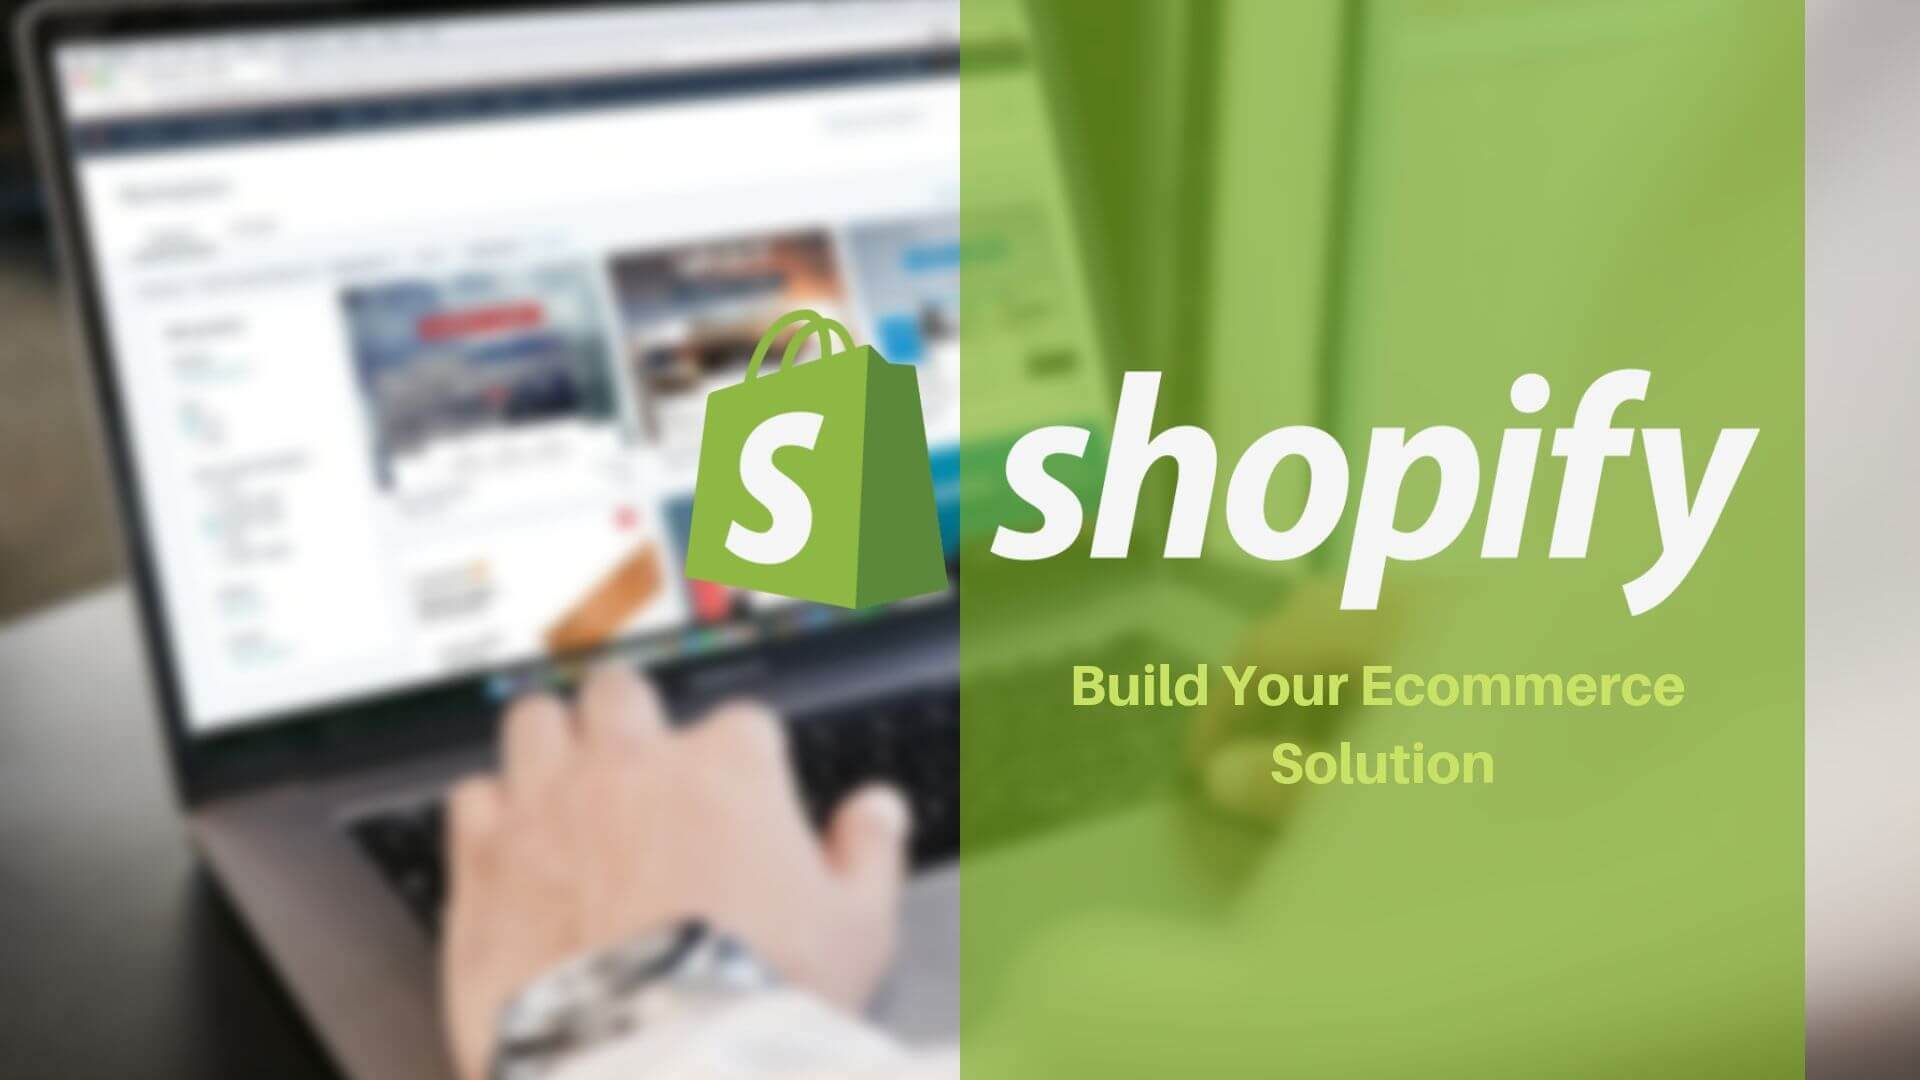 Shopify Vs Selling On Amazon